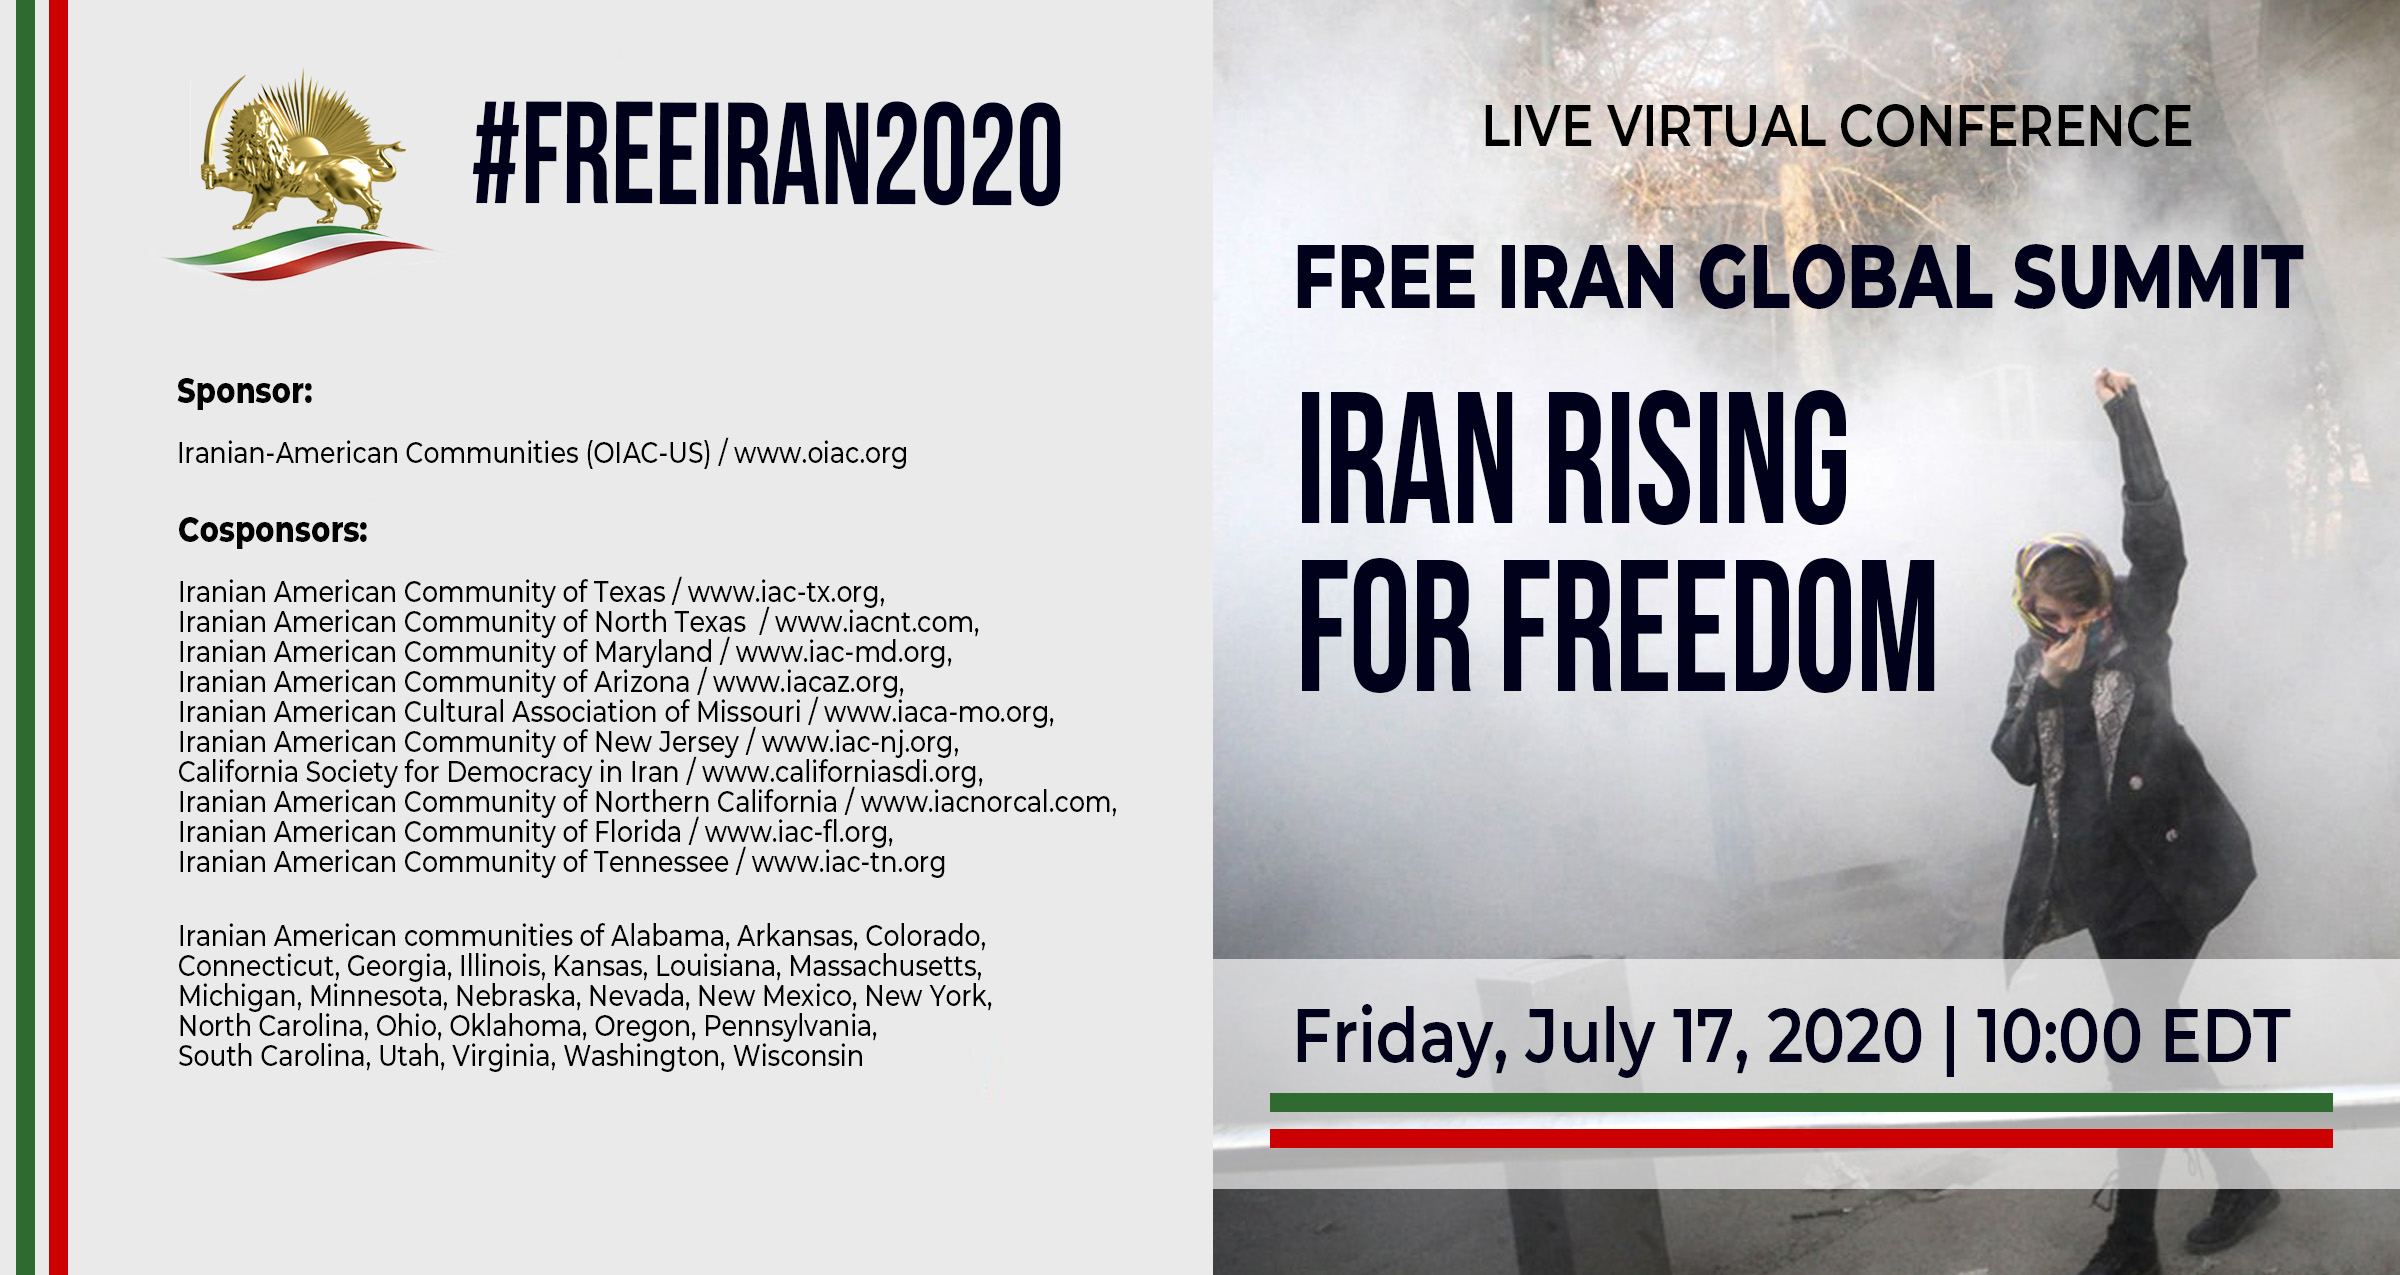 Live Virtual Conference Free Iran Global Summit